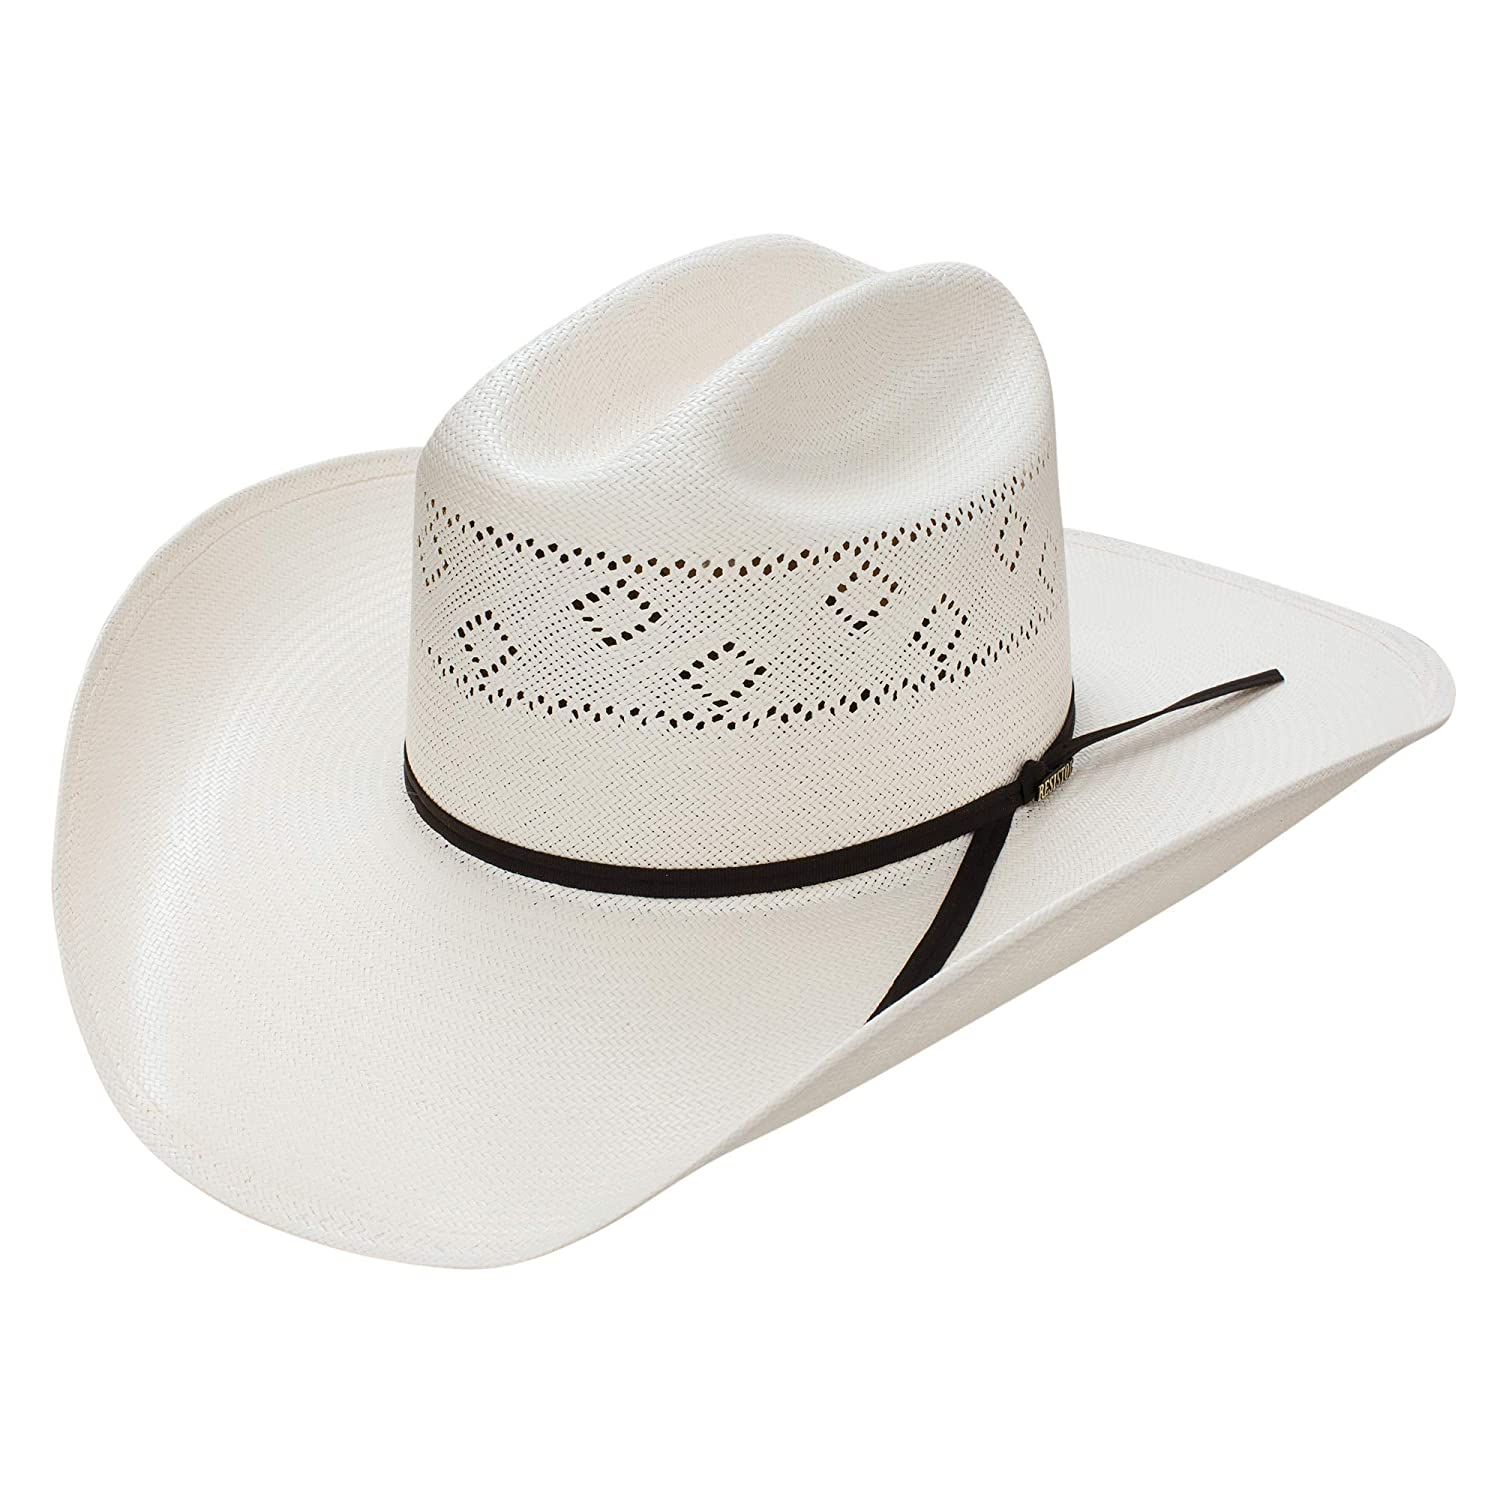 Resistol 20X Tuff Anuff Natural Cowboy Hat Forester Size 7 RSFRST-30428170